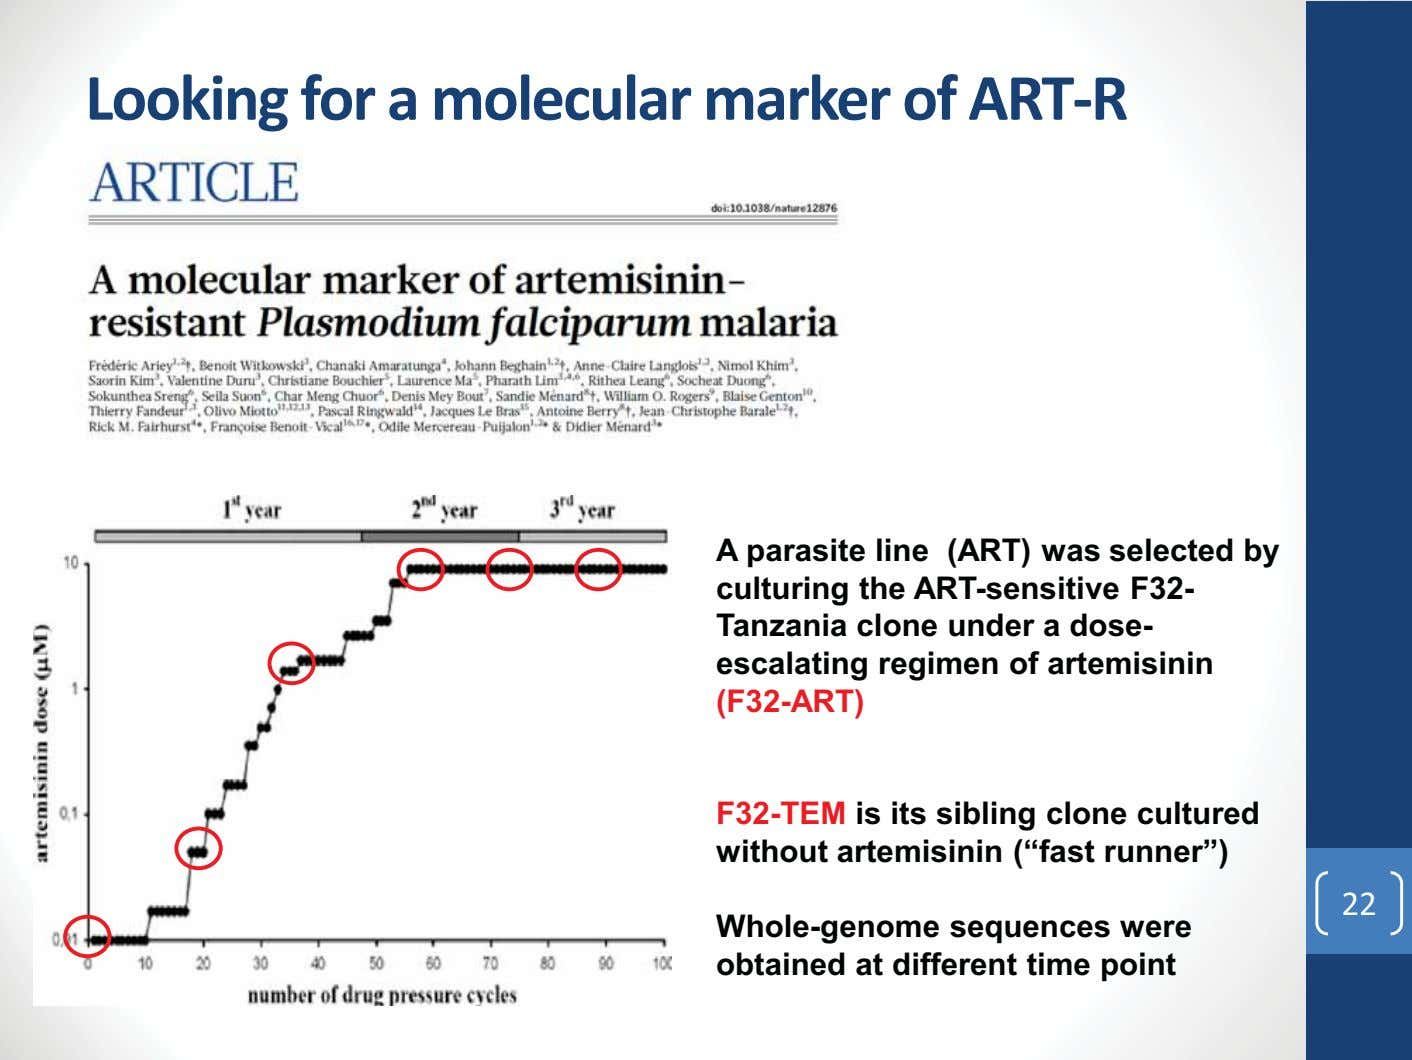 Looking for a molecular marker of ART-R A parasite line (ART) was selected by culturing